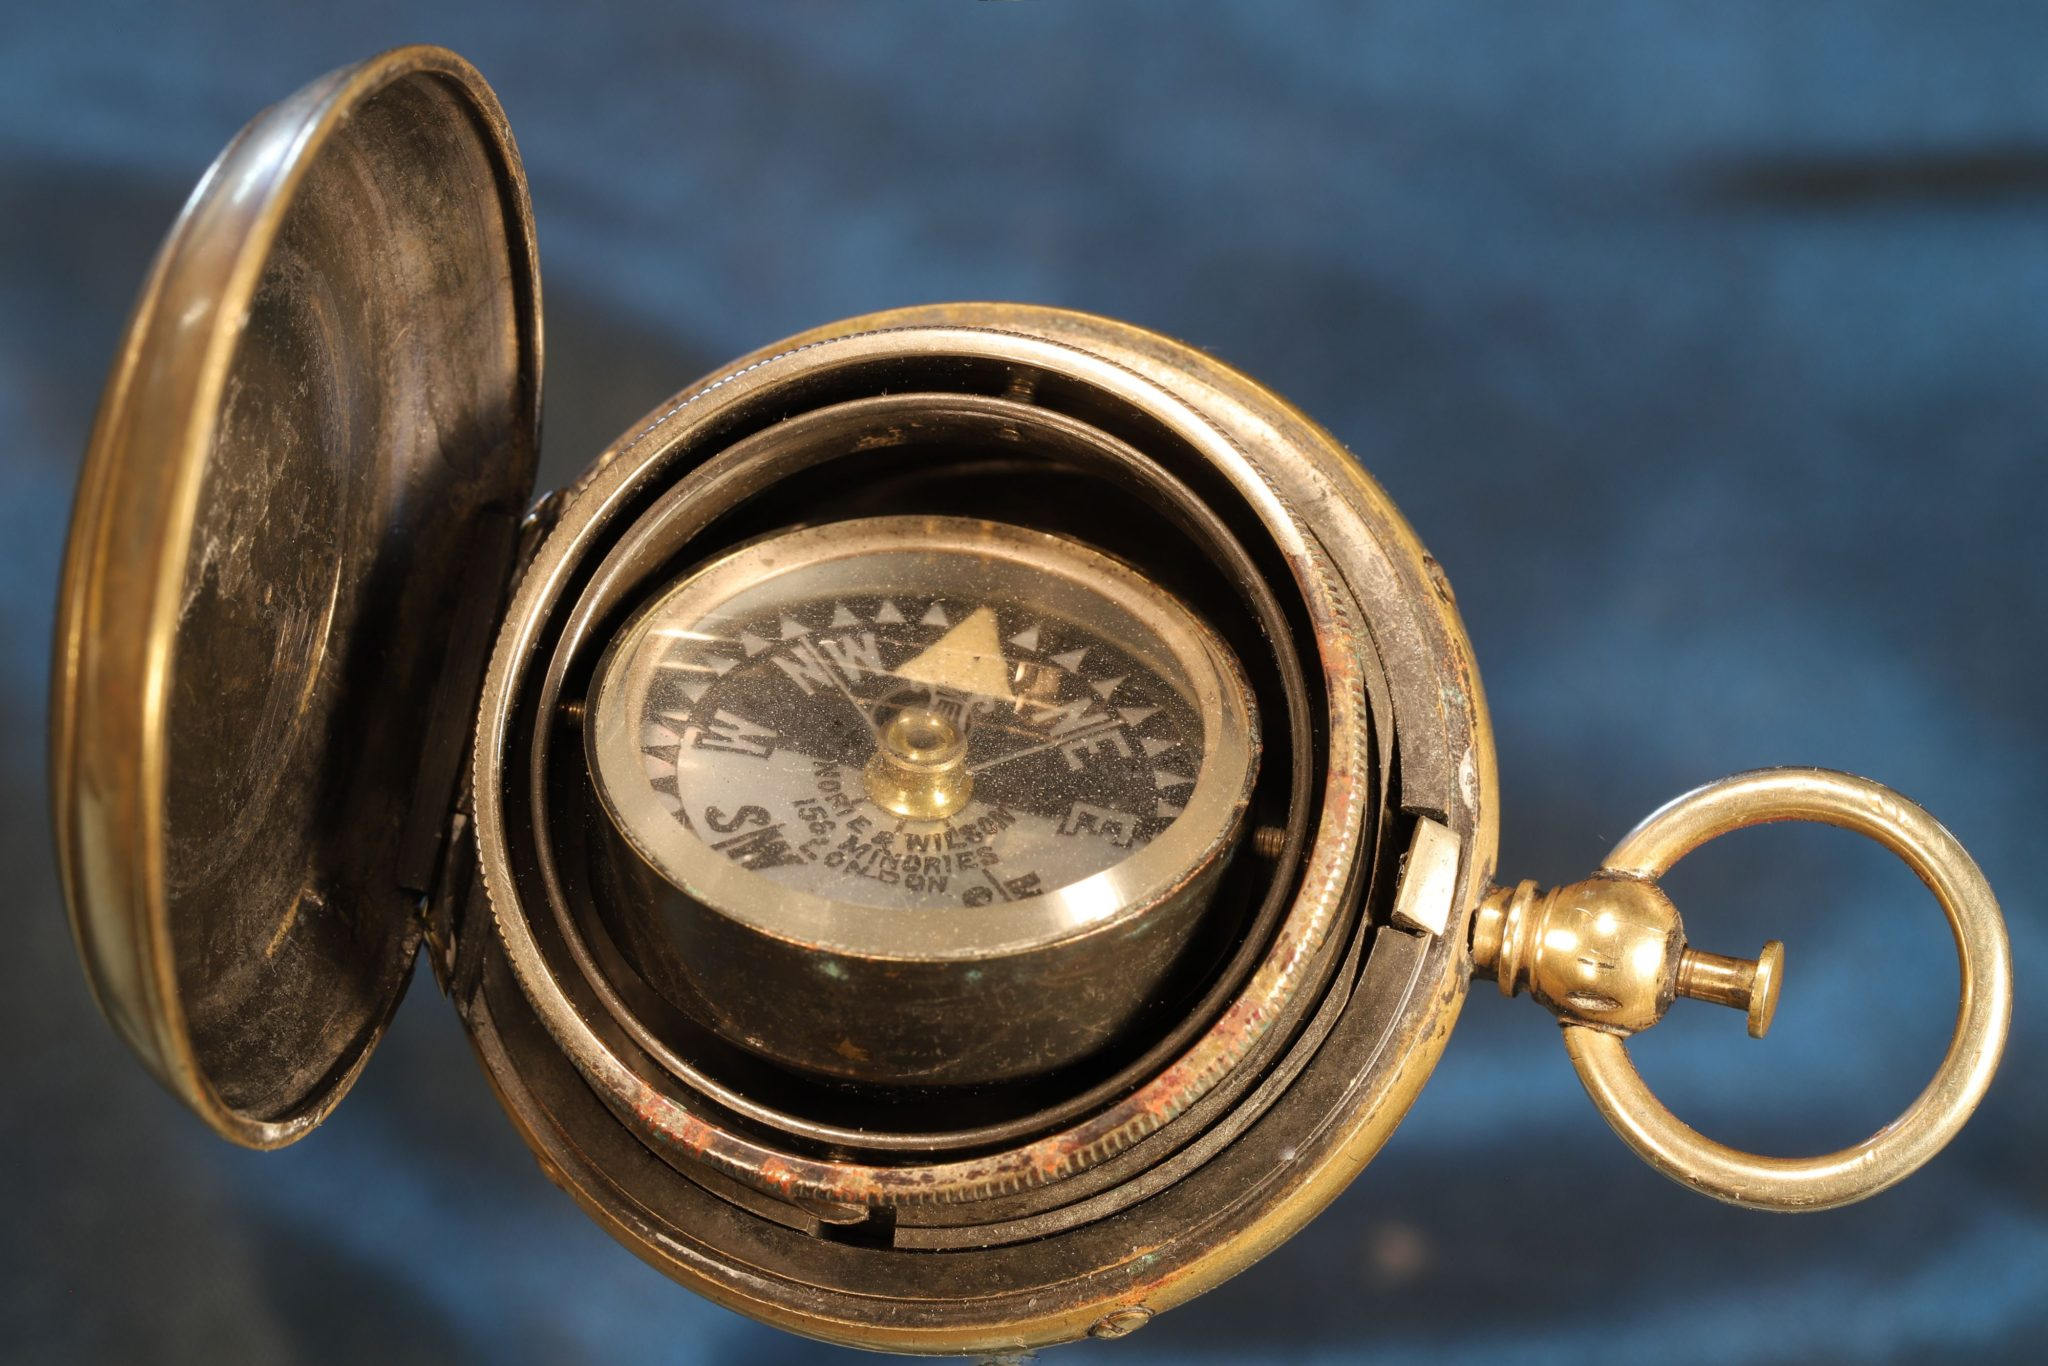 Image of Barker Gimballed Compass c1885